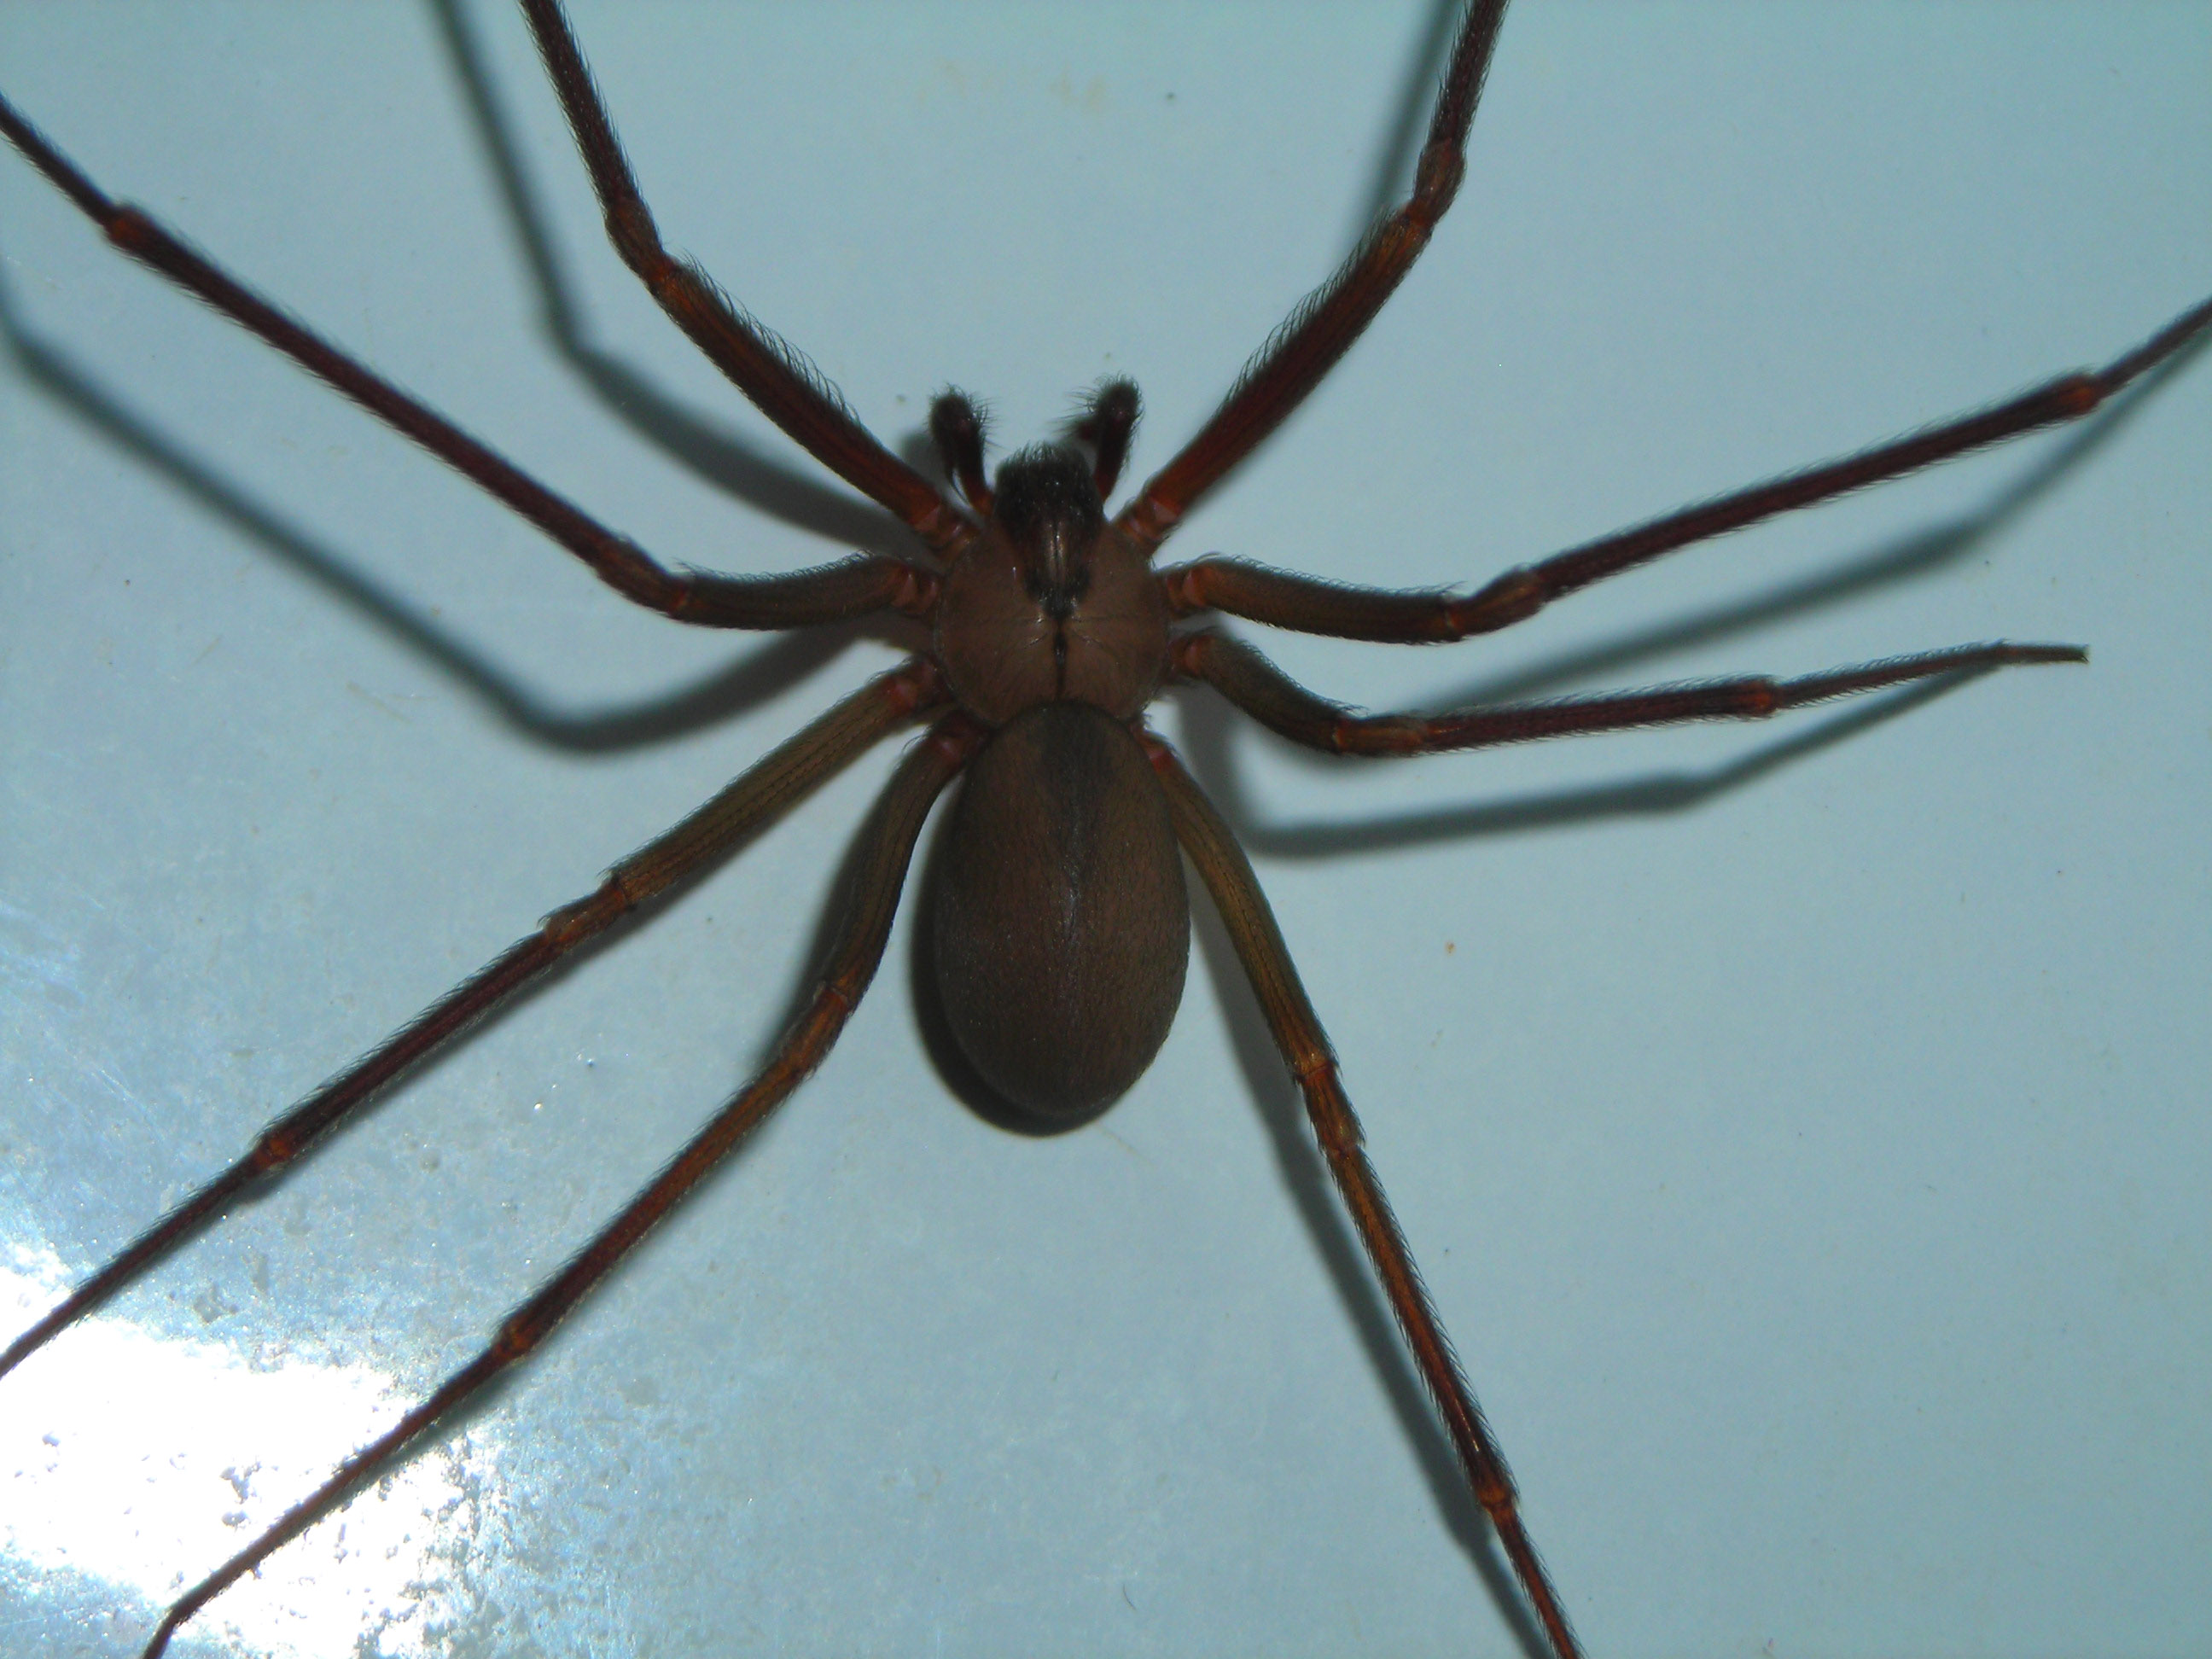 Spider Release Date >> File:Brown-recluse-1.jpg - Wikimedia Commons